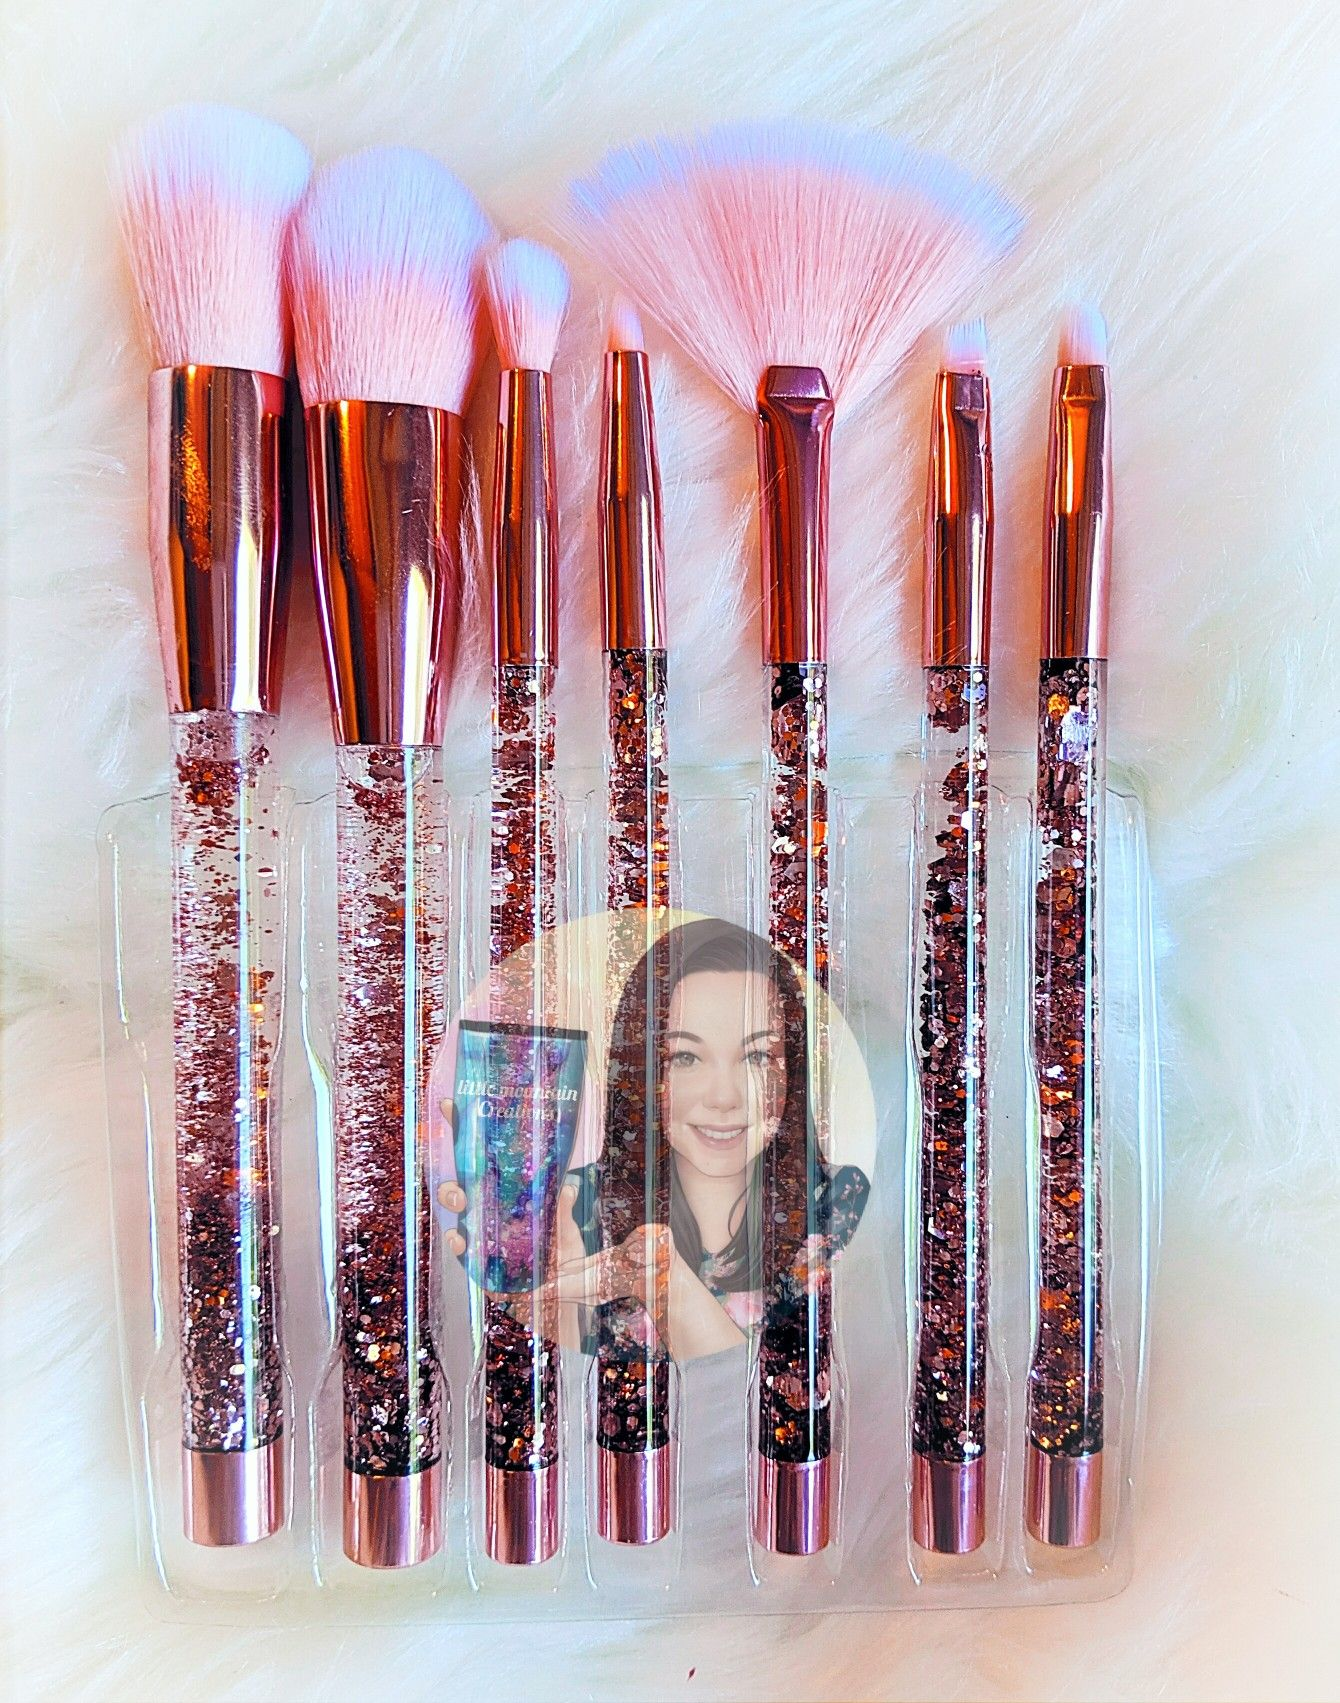 Makeup Makeup Brushes Make Up Brush Set Make Up Artist Makeup Brush Set Makeup Brushes Brush Set